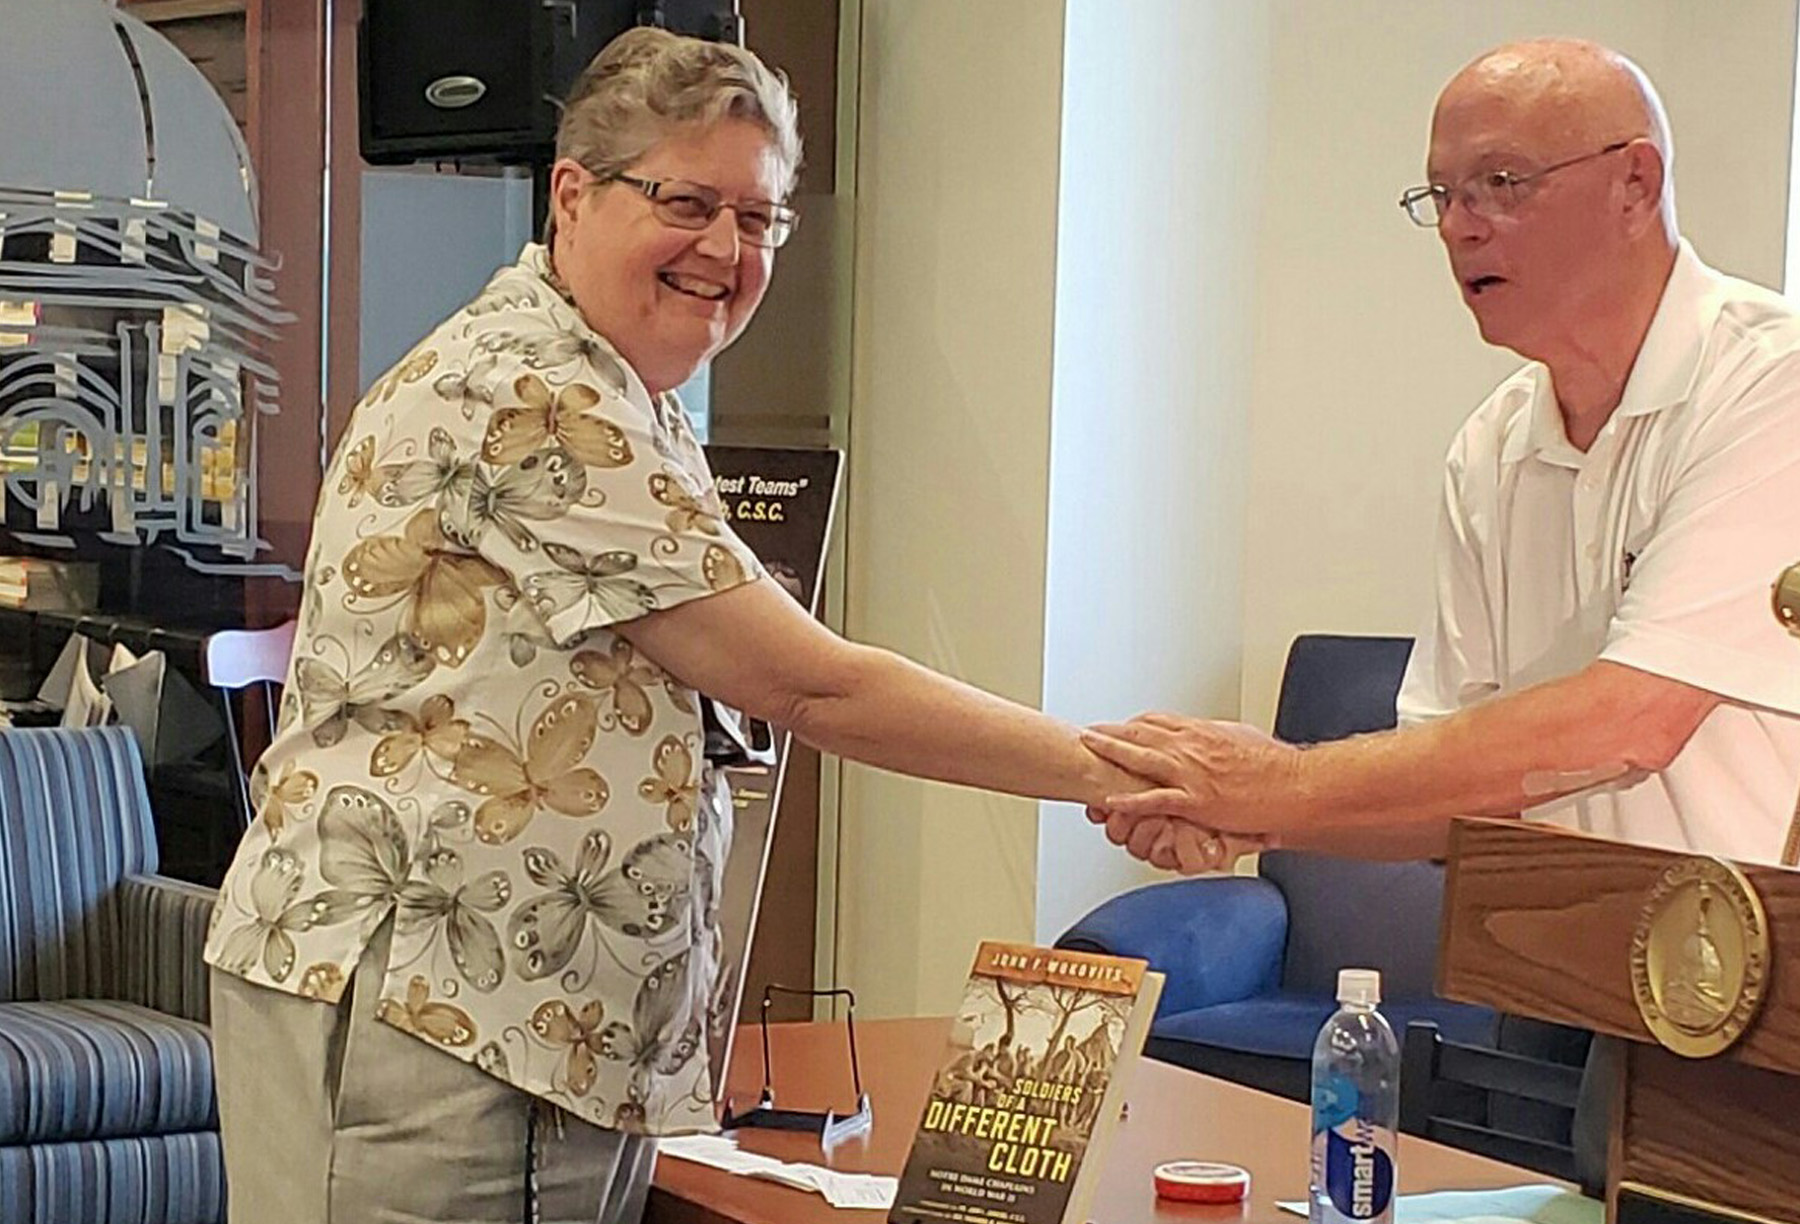 Sister Catherine Osimo, CSC, greets John F. Wukovits, author of Soldiers of a Different Cloth: Notre Dame Chaplains in World War II, at a book signing event on August 30 at the University of Notre Dame.